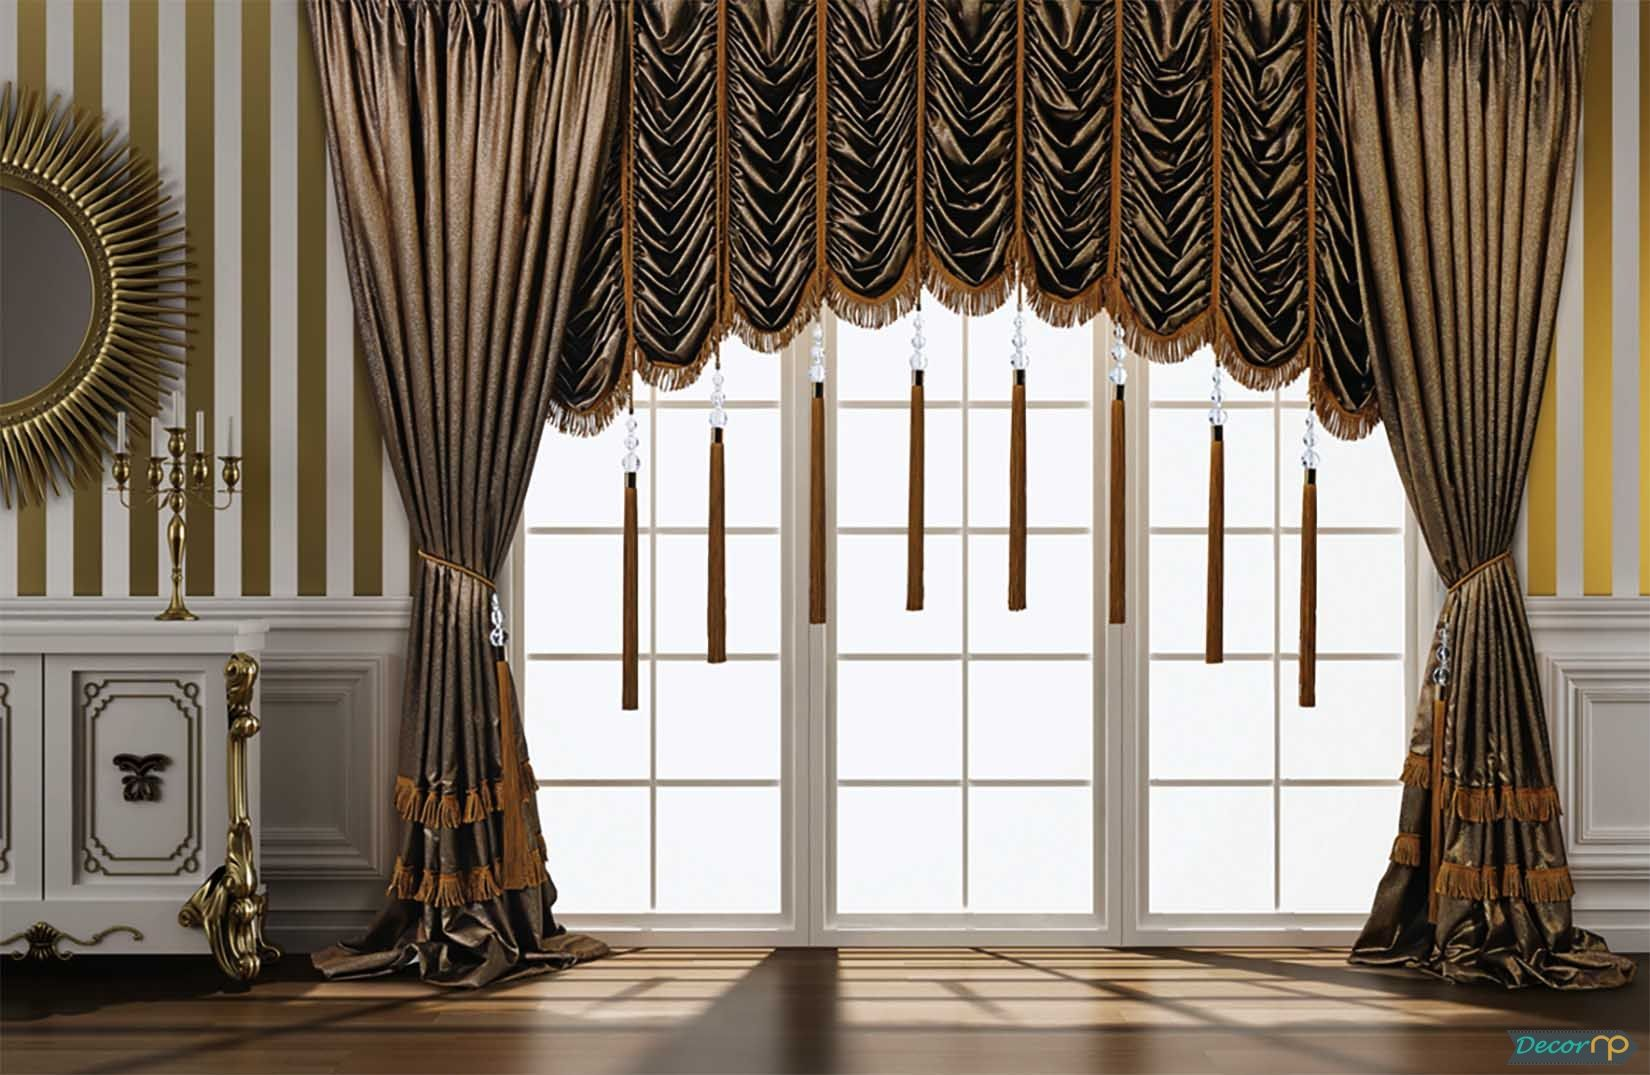 30+ Very Stylish Living Room Curtain Models | Living room curtains ...